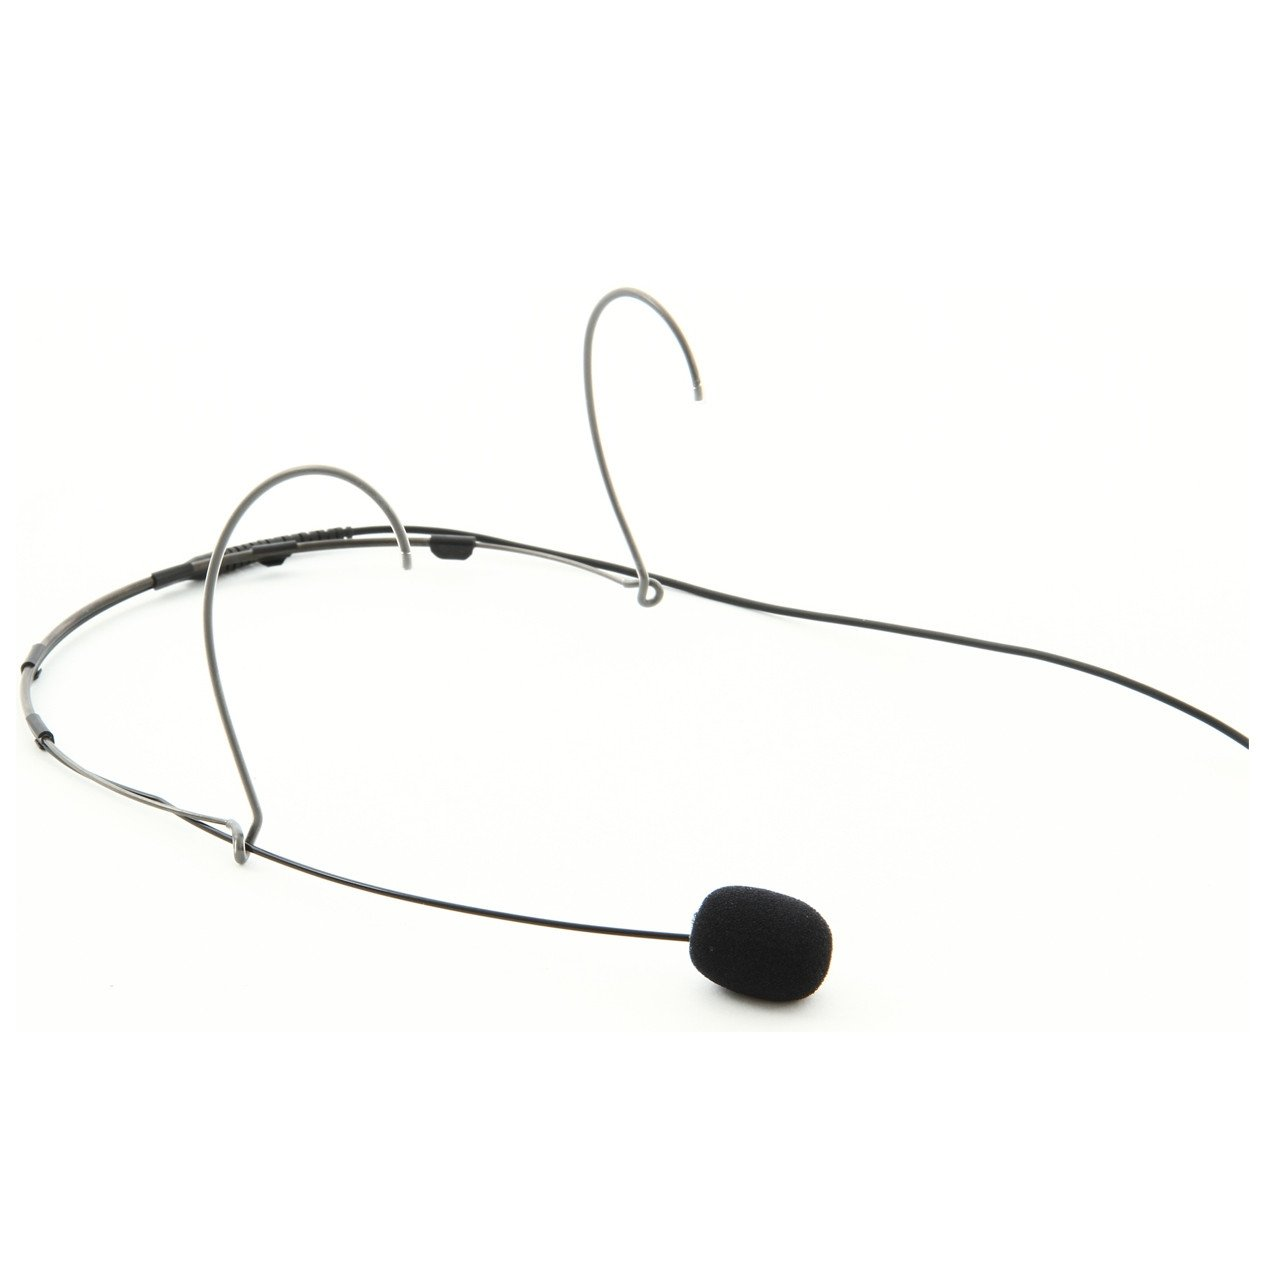 Headset Microphones - DPA D:fine™ 4088 Directional Headset Microphone